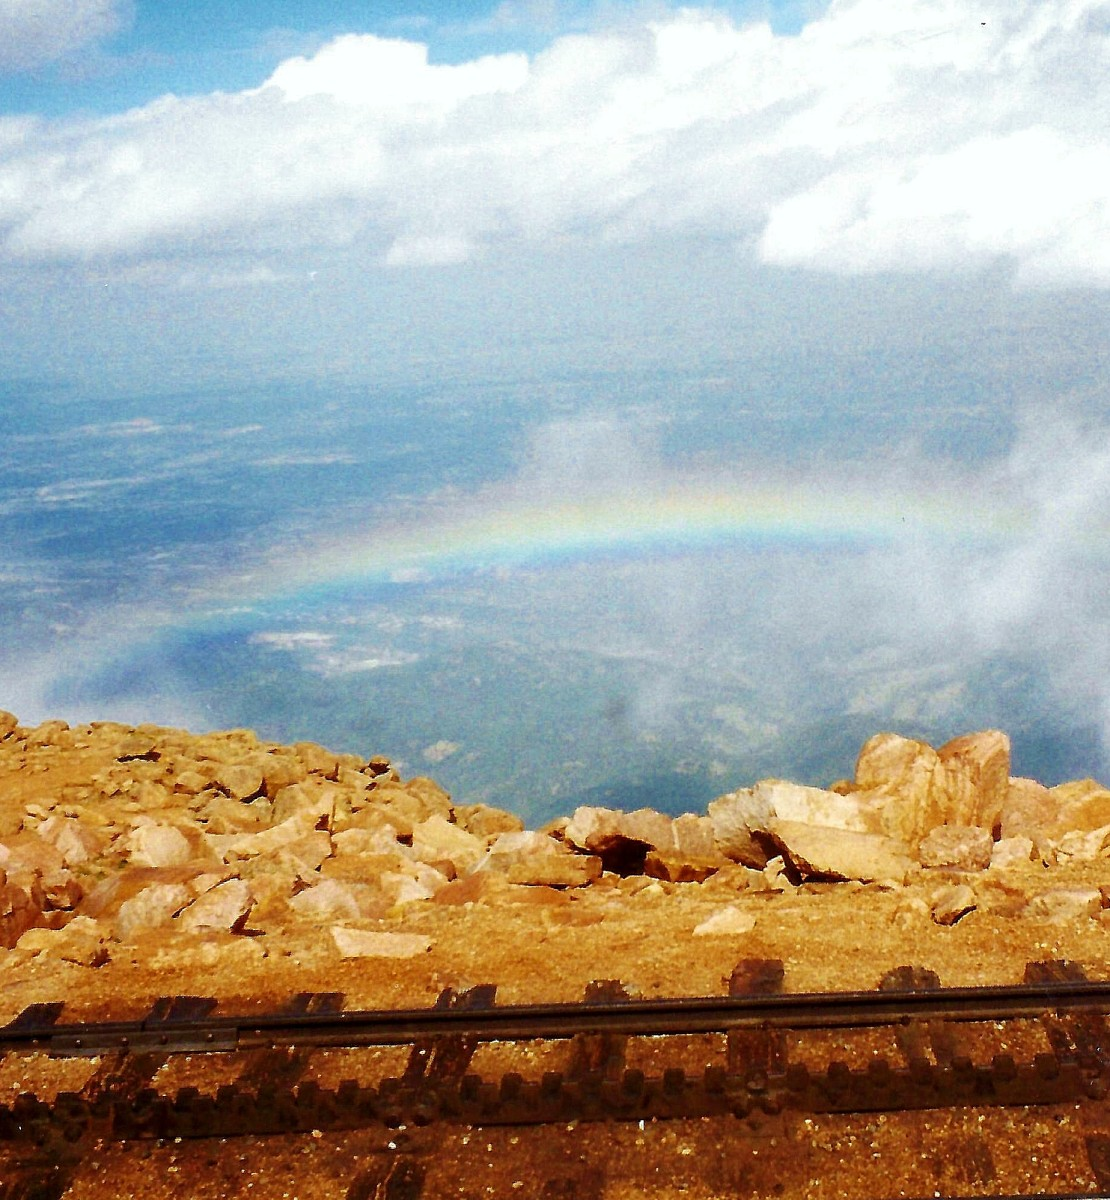 View of the cog railway track and beautiful rainbow at the top of Pikes Peak.